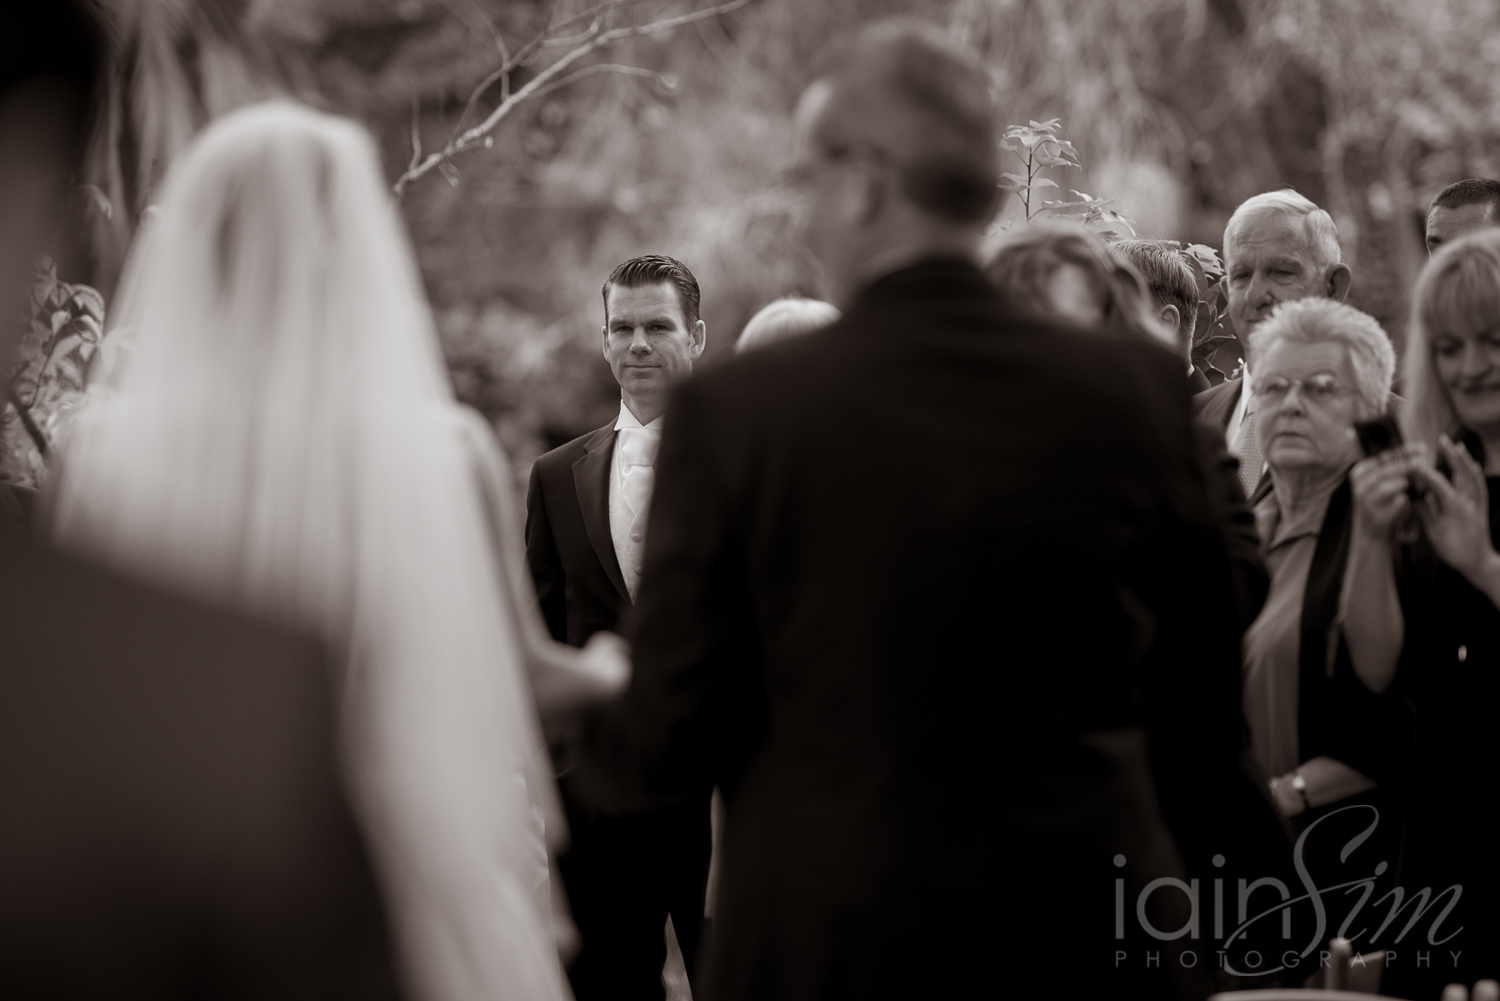 wpid-Katherine-and-Marks-RipponLea-Wedding-by-Iain-Sim-Photography_014.jpg